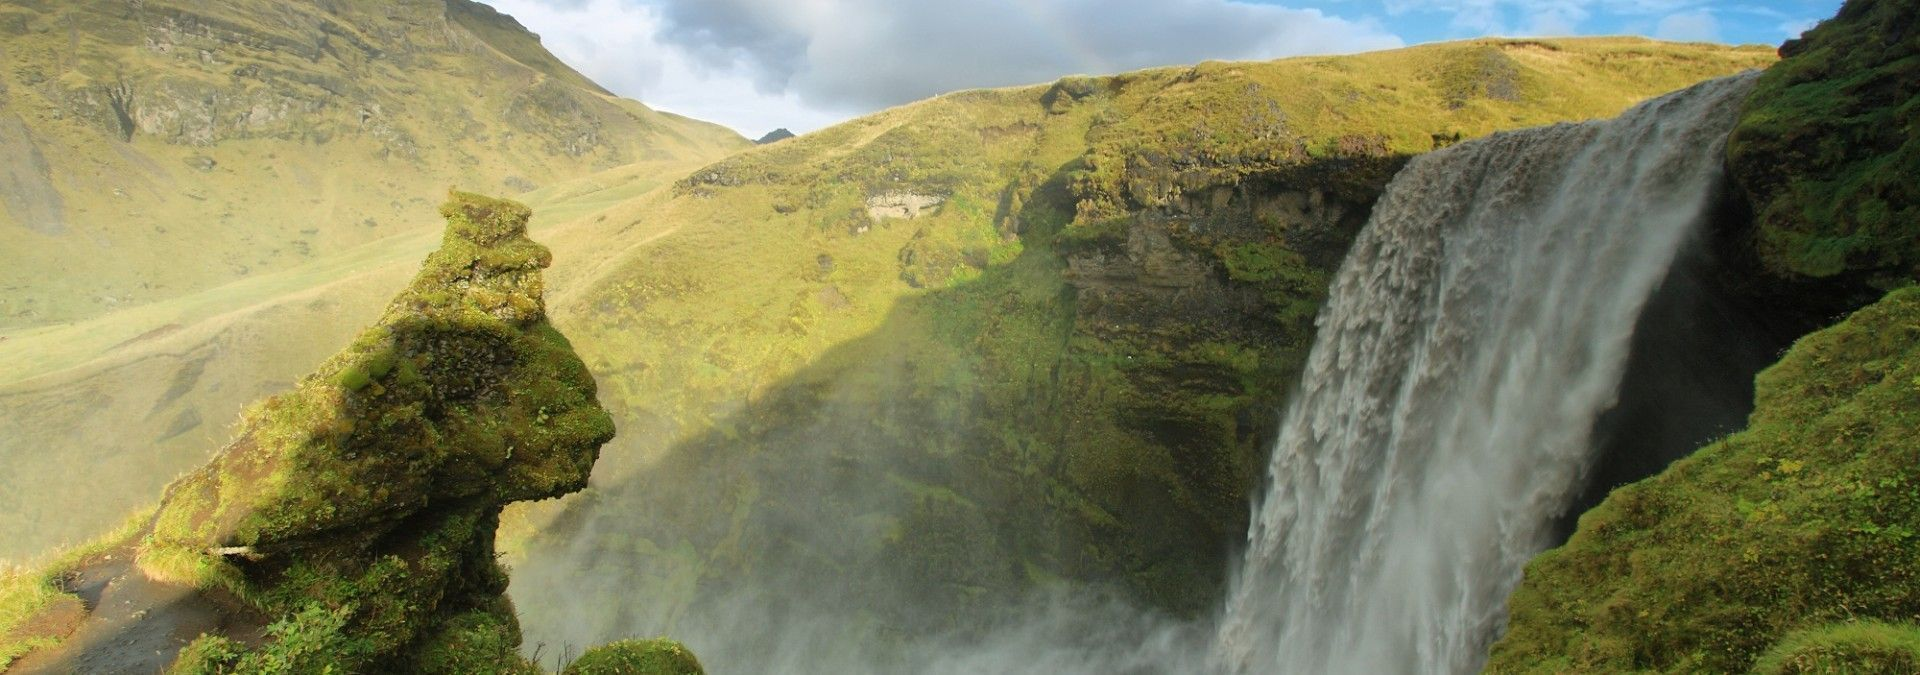 Waterfall_Icelandic_Lava_Trek.jpg